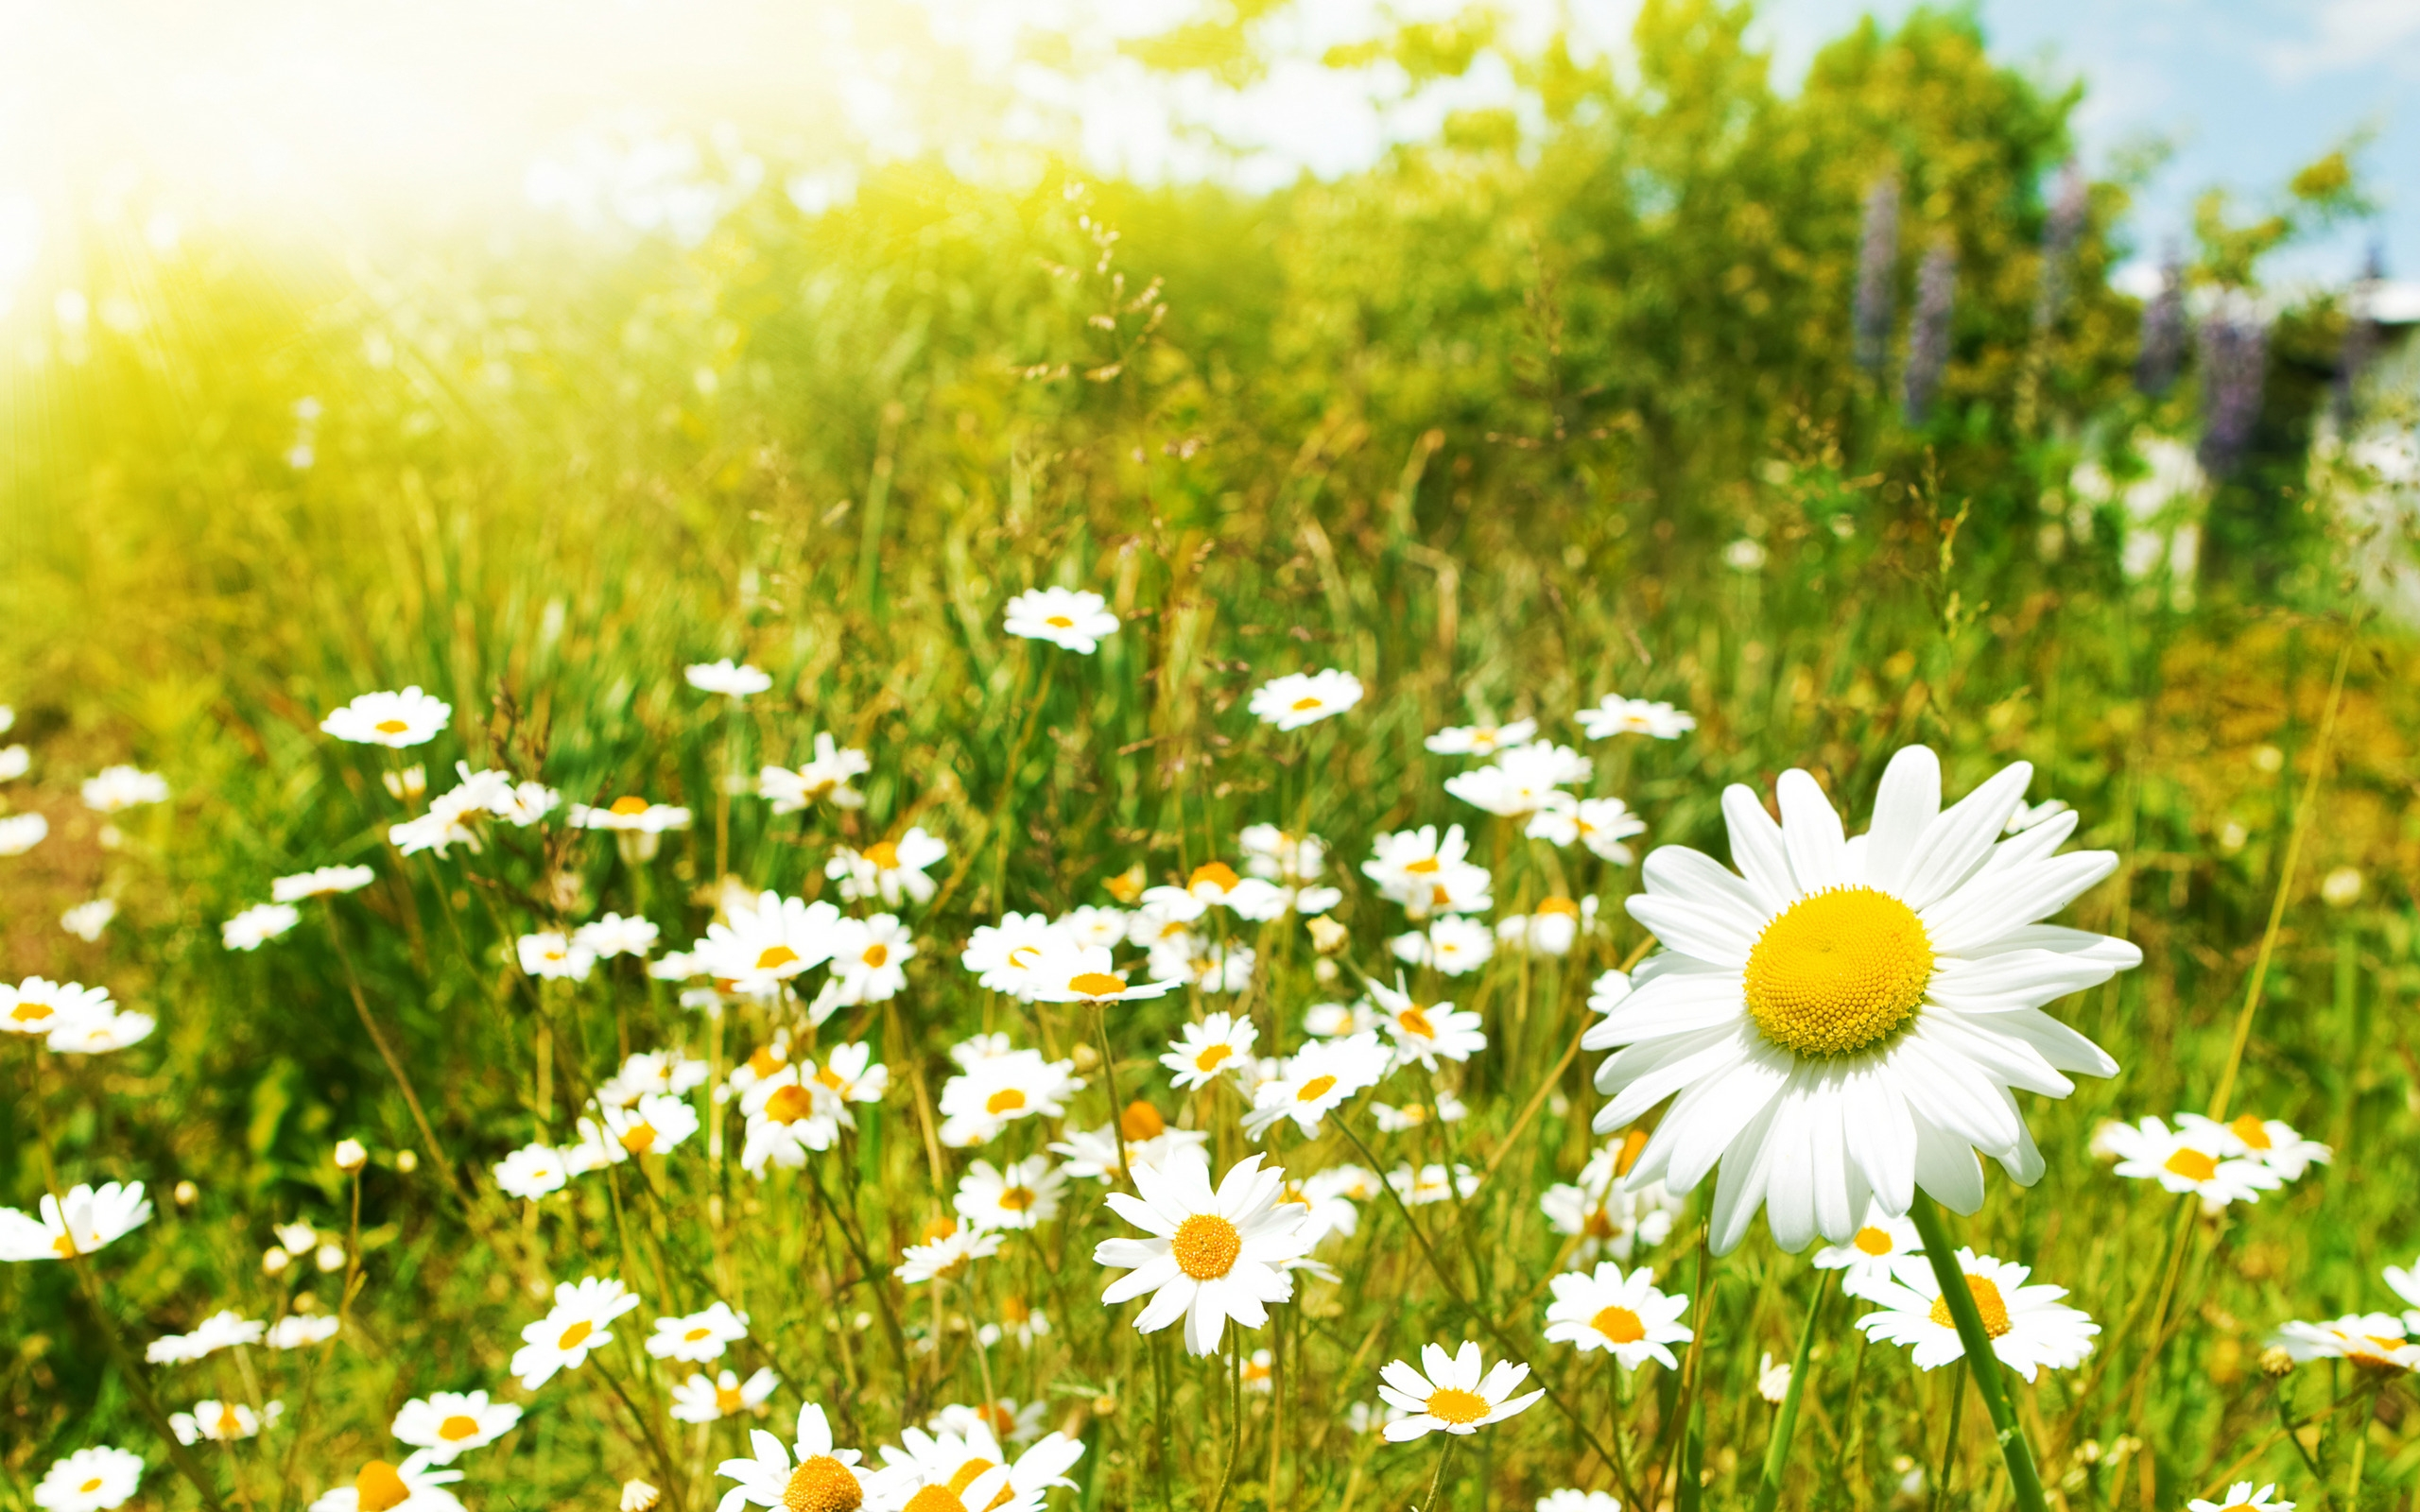 2012-mother-s-day-beautiful-flower-camomile-meadow_2560x1600_97315